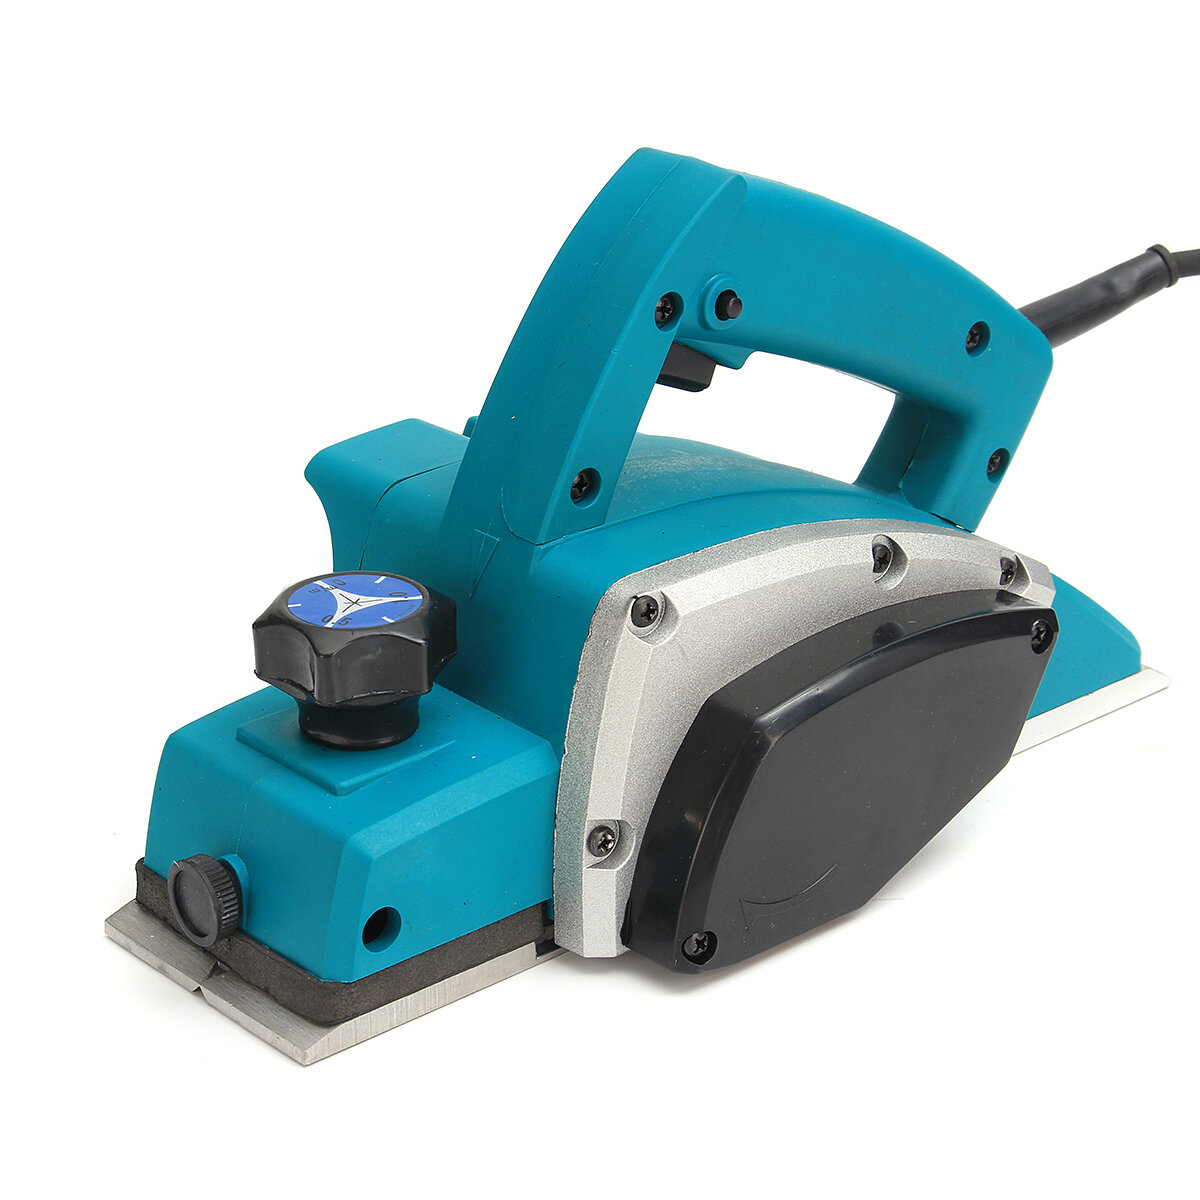 220v 800w Powerful Electric Wood Planer Door Plane Hand - Electric Hand Planer